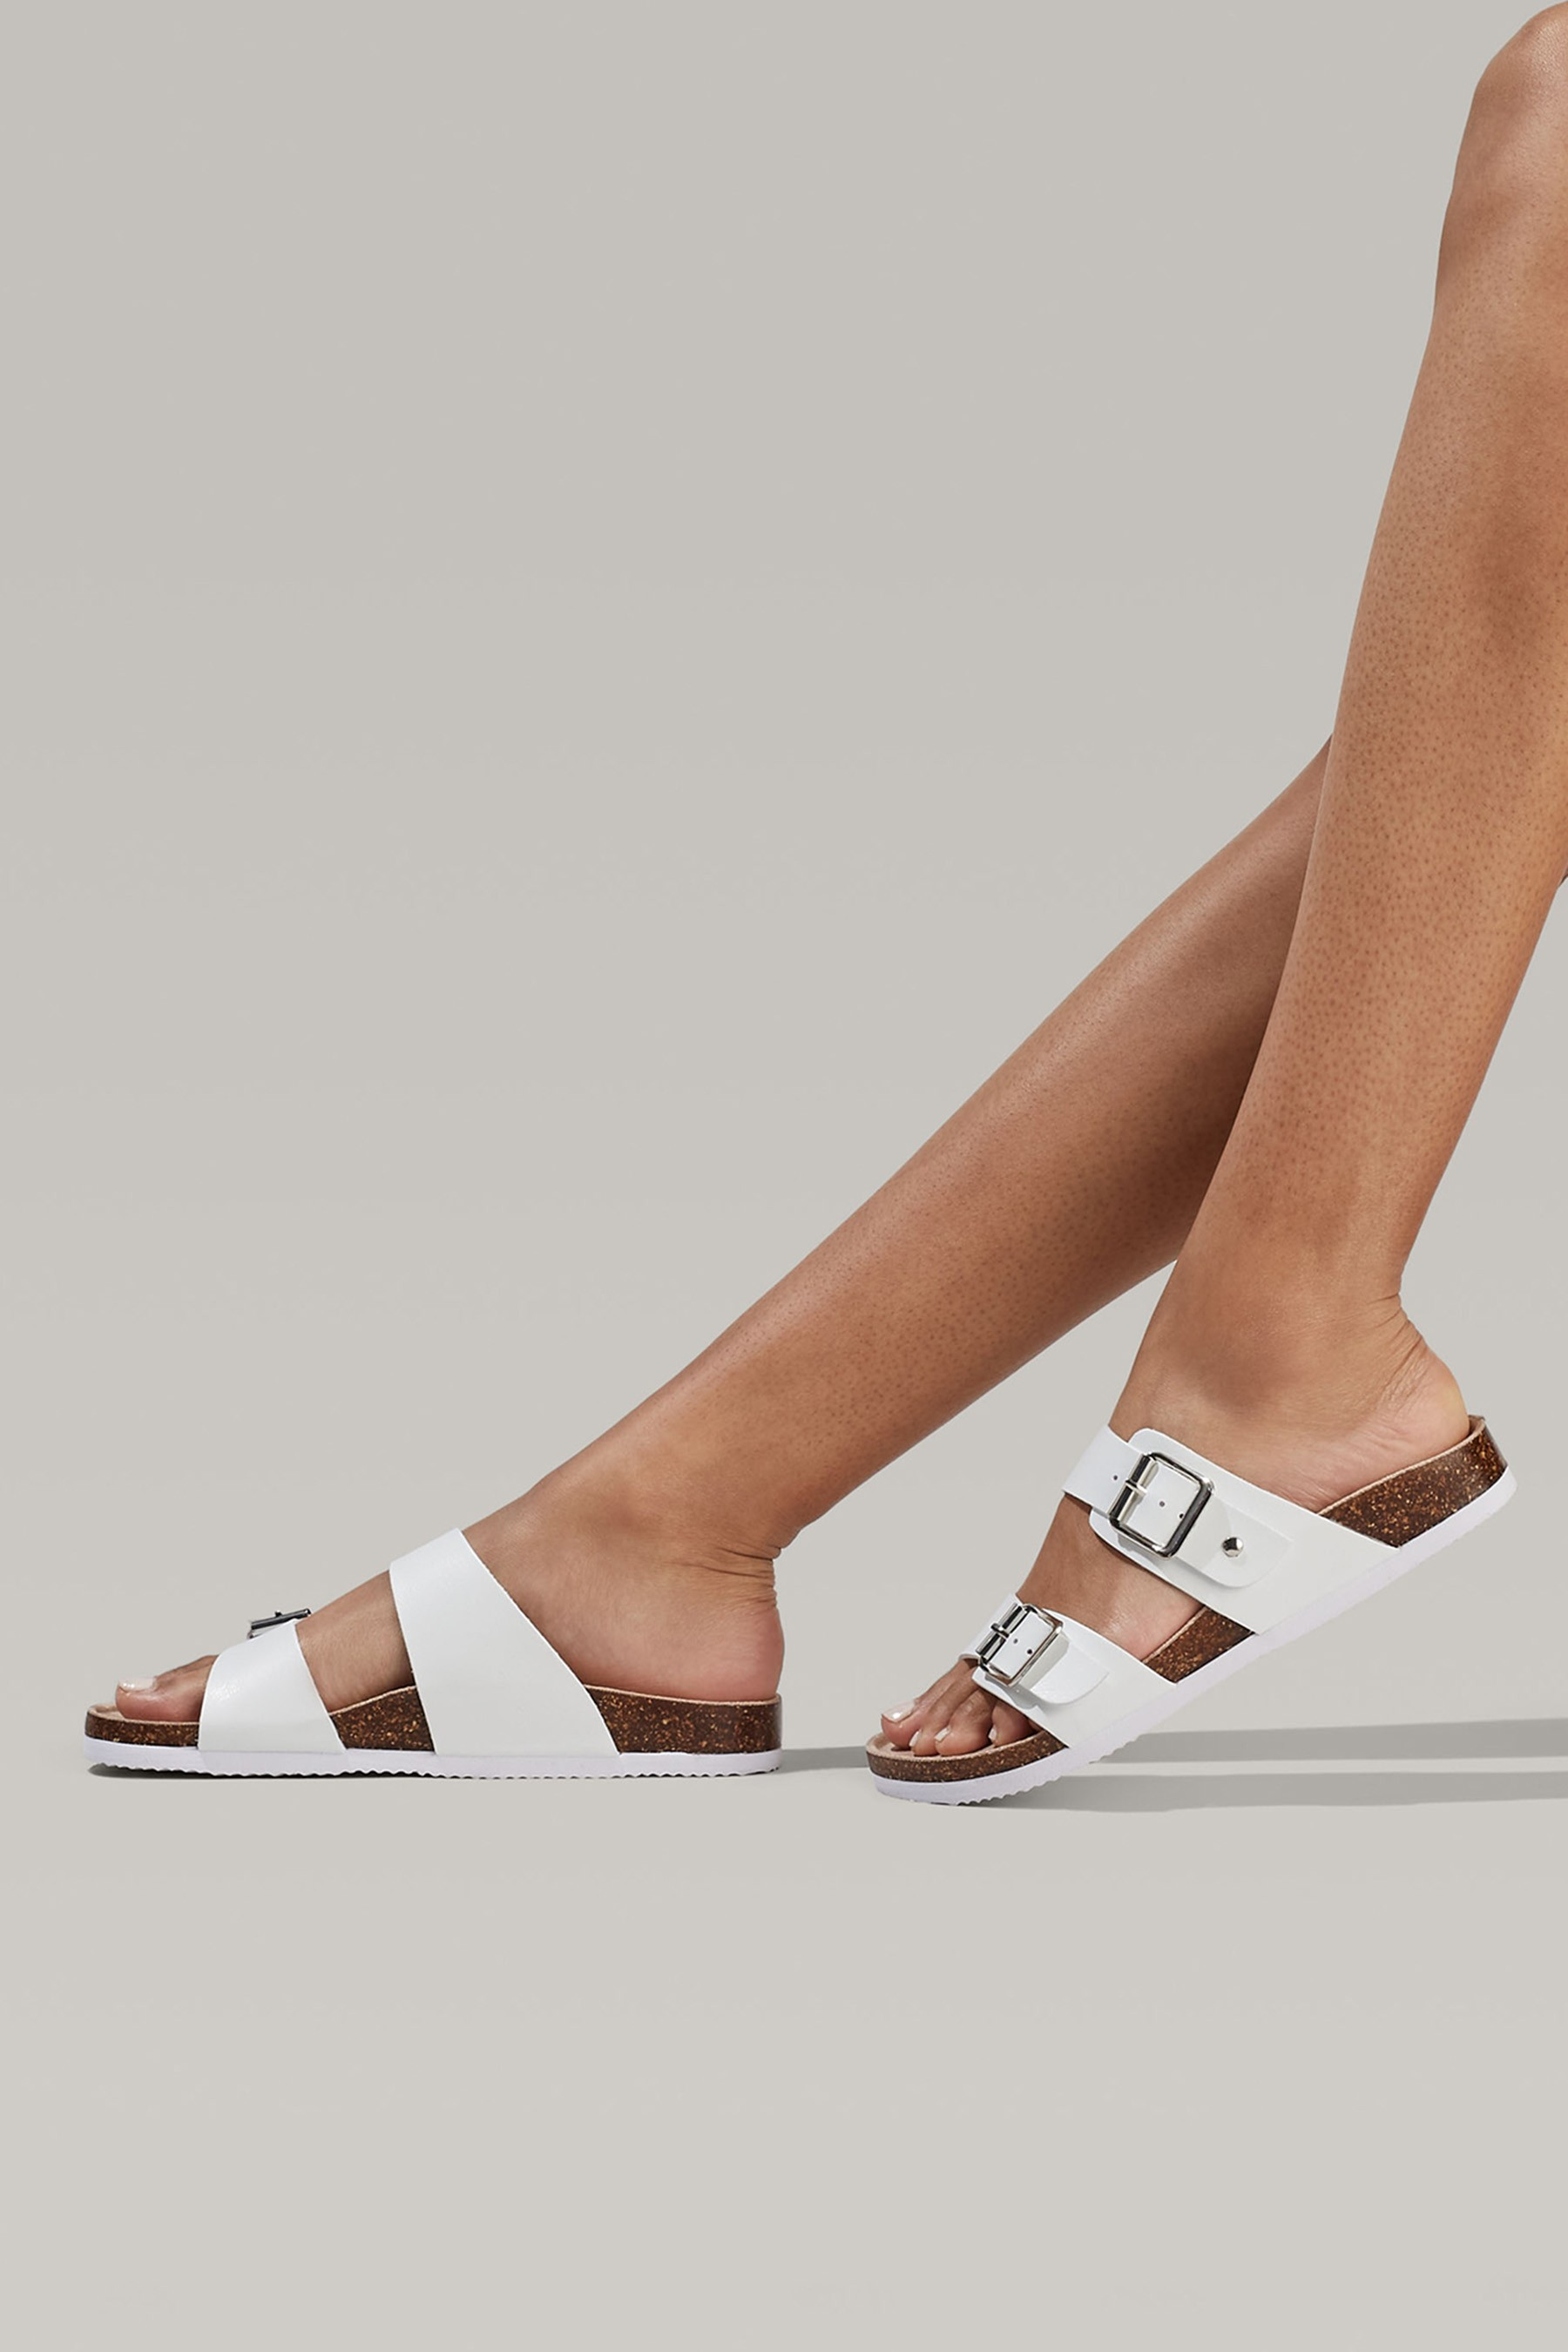 Miss kg Sian Strappy Block Heeled Sandals in Multicolor